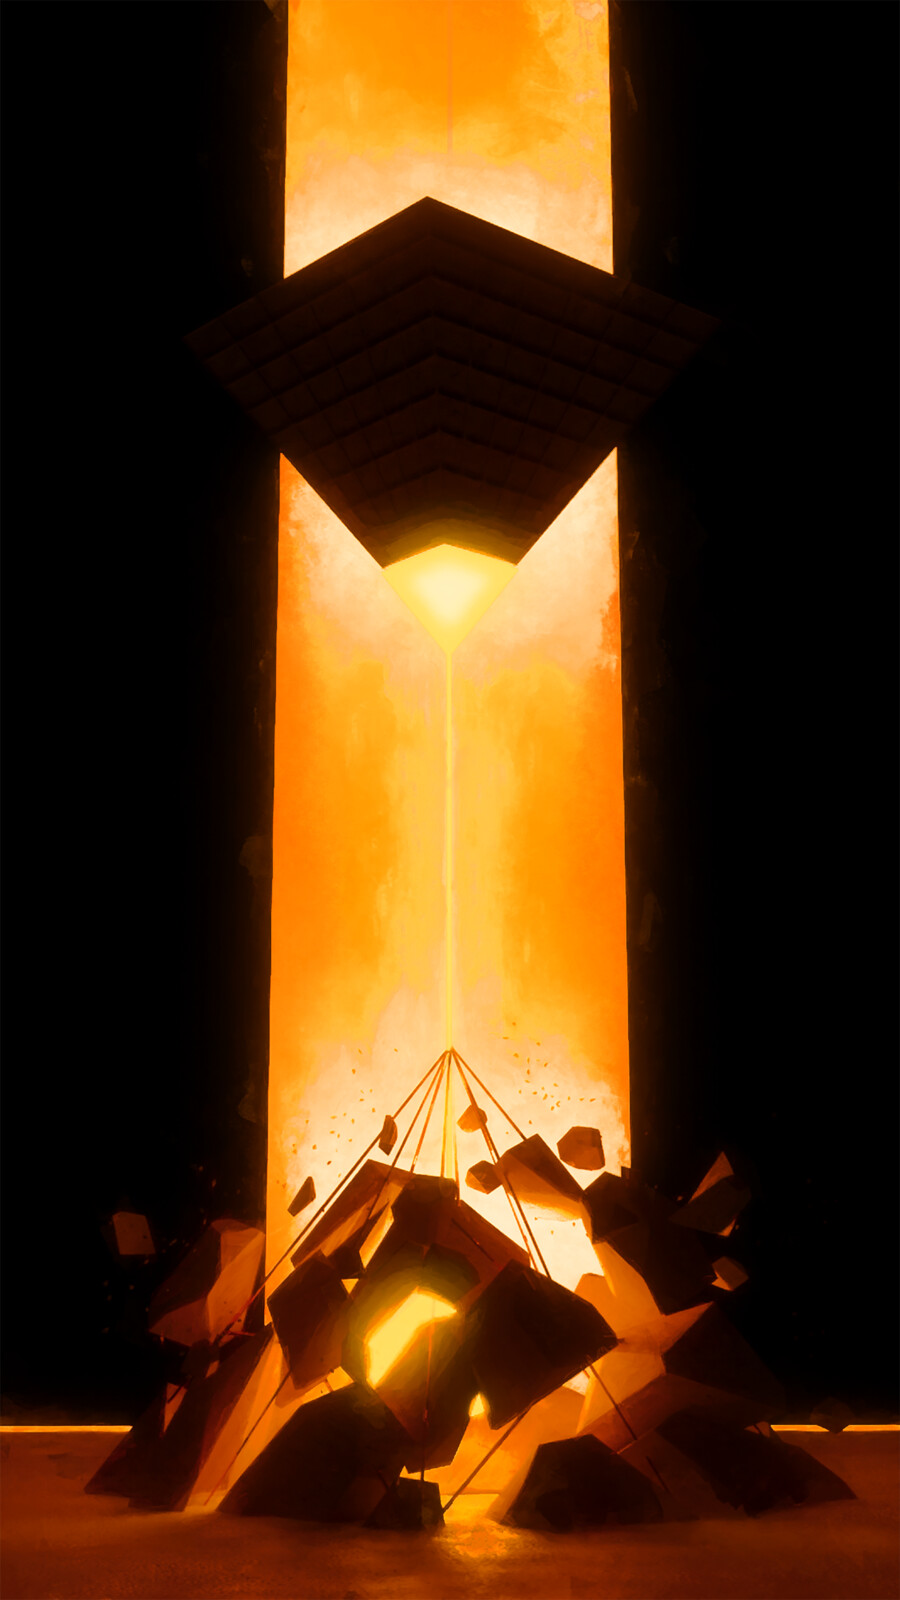 Title: Destruction  Description: A pyramid blasts another shattering it in pieces